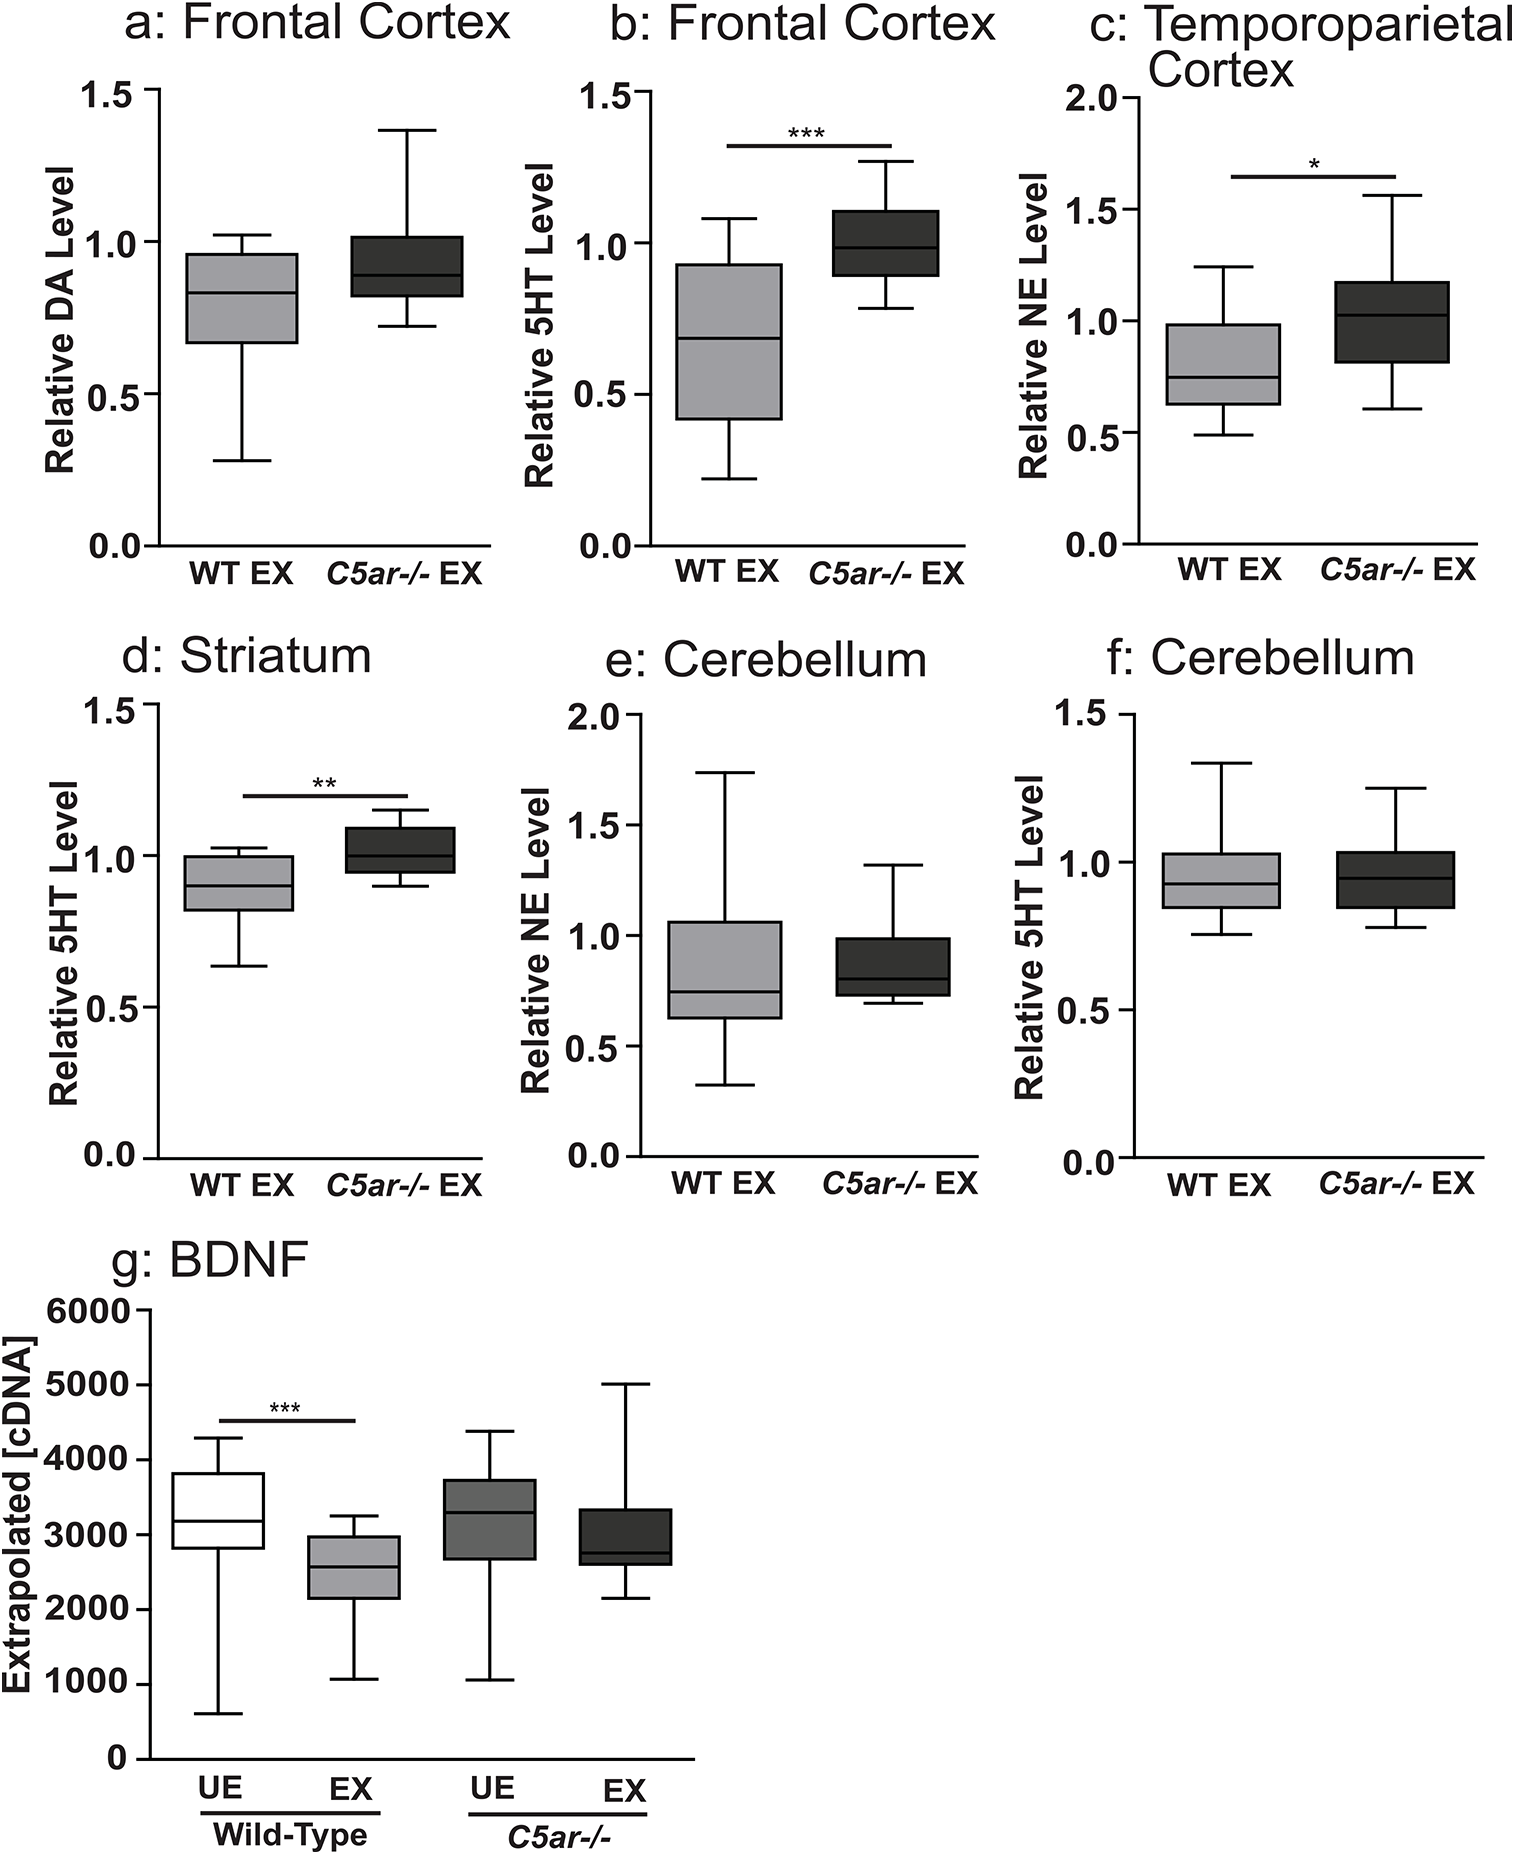 Reduced tissue levels of biogenic amine transmitters were observed in wild-type malaria exposed, but not in C5a receptor knockout offspring, relative to unexposed controls.